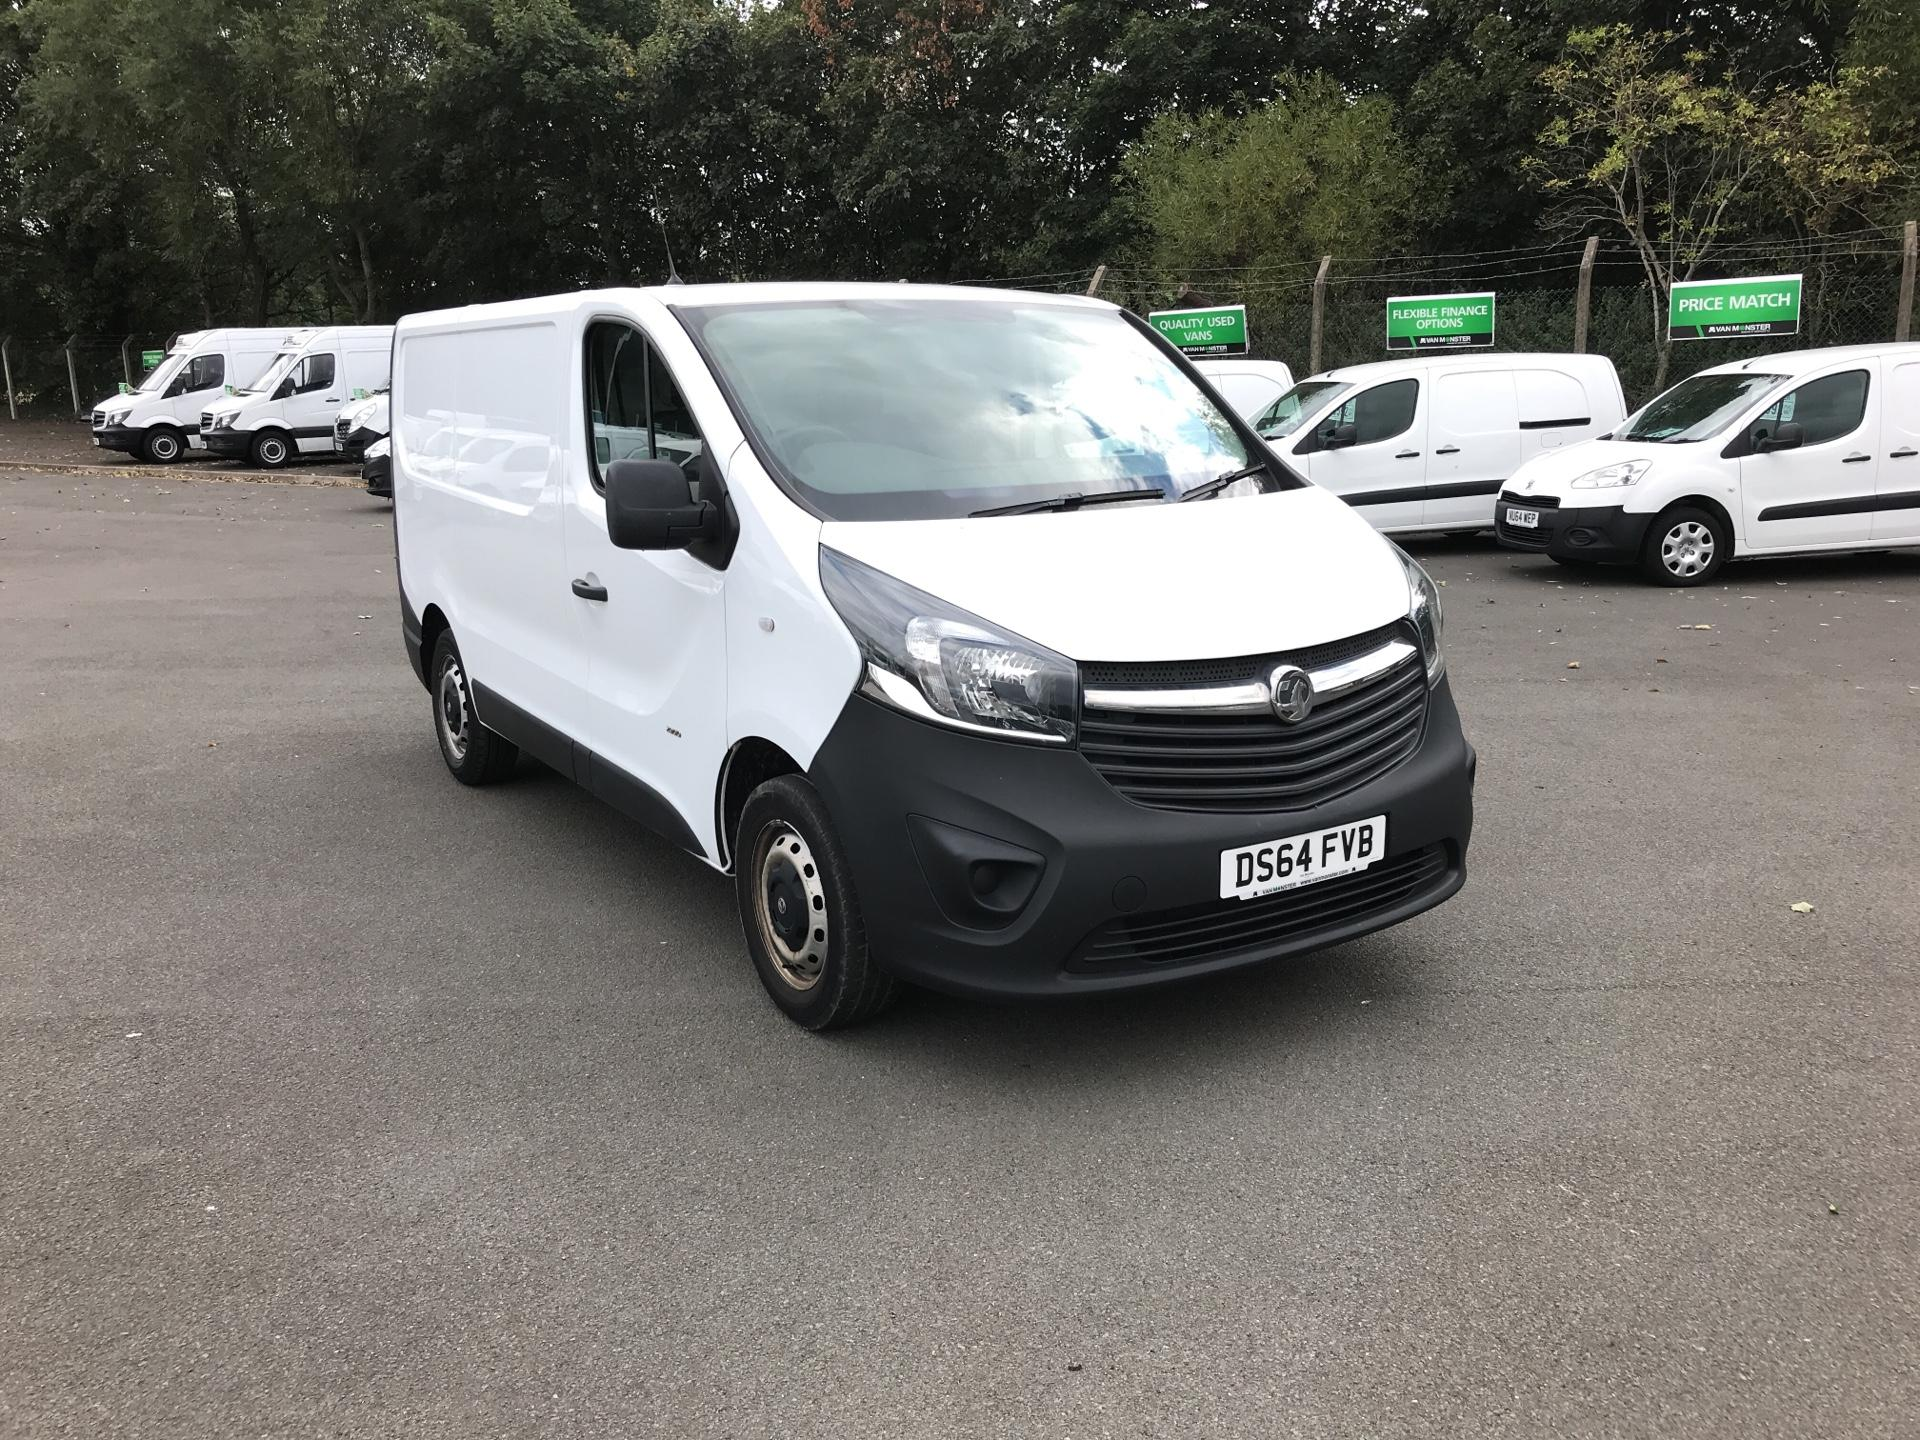 2015 Vauxhall Vivaro  L1 H1 2900 1.6 115PS EURO 5 *VALUE RANGE VEHICLE - CONDITION REFLECTED IN PRICE* (DS64FVB)